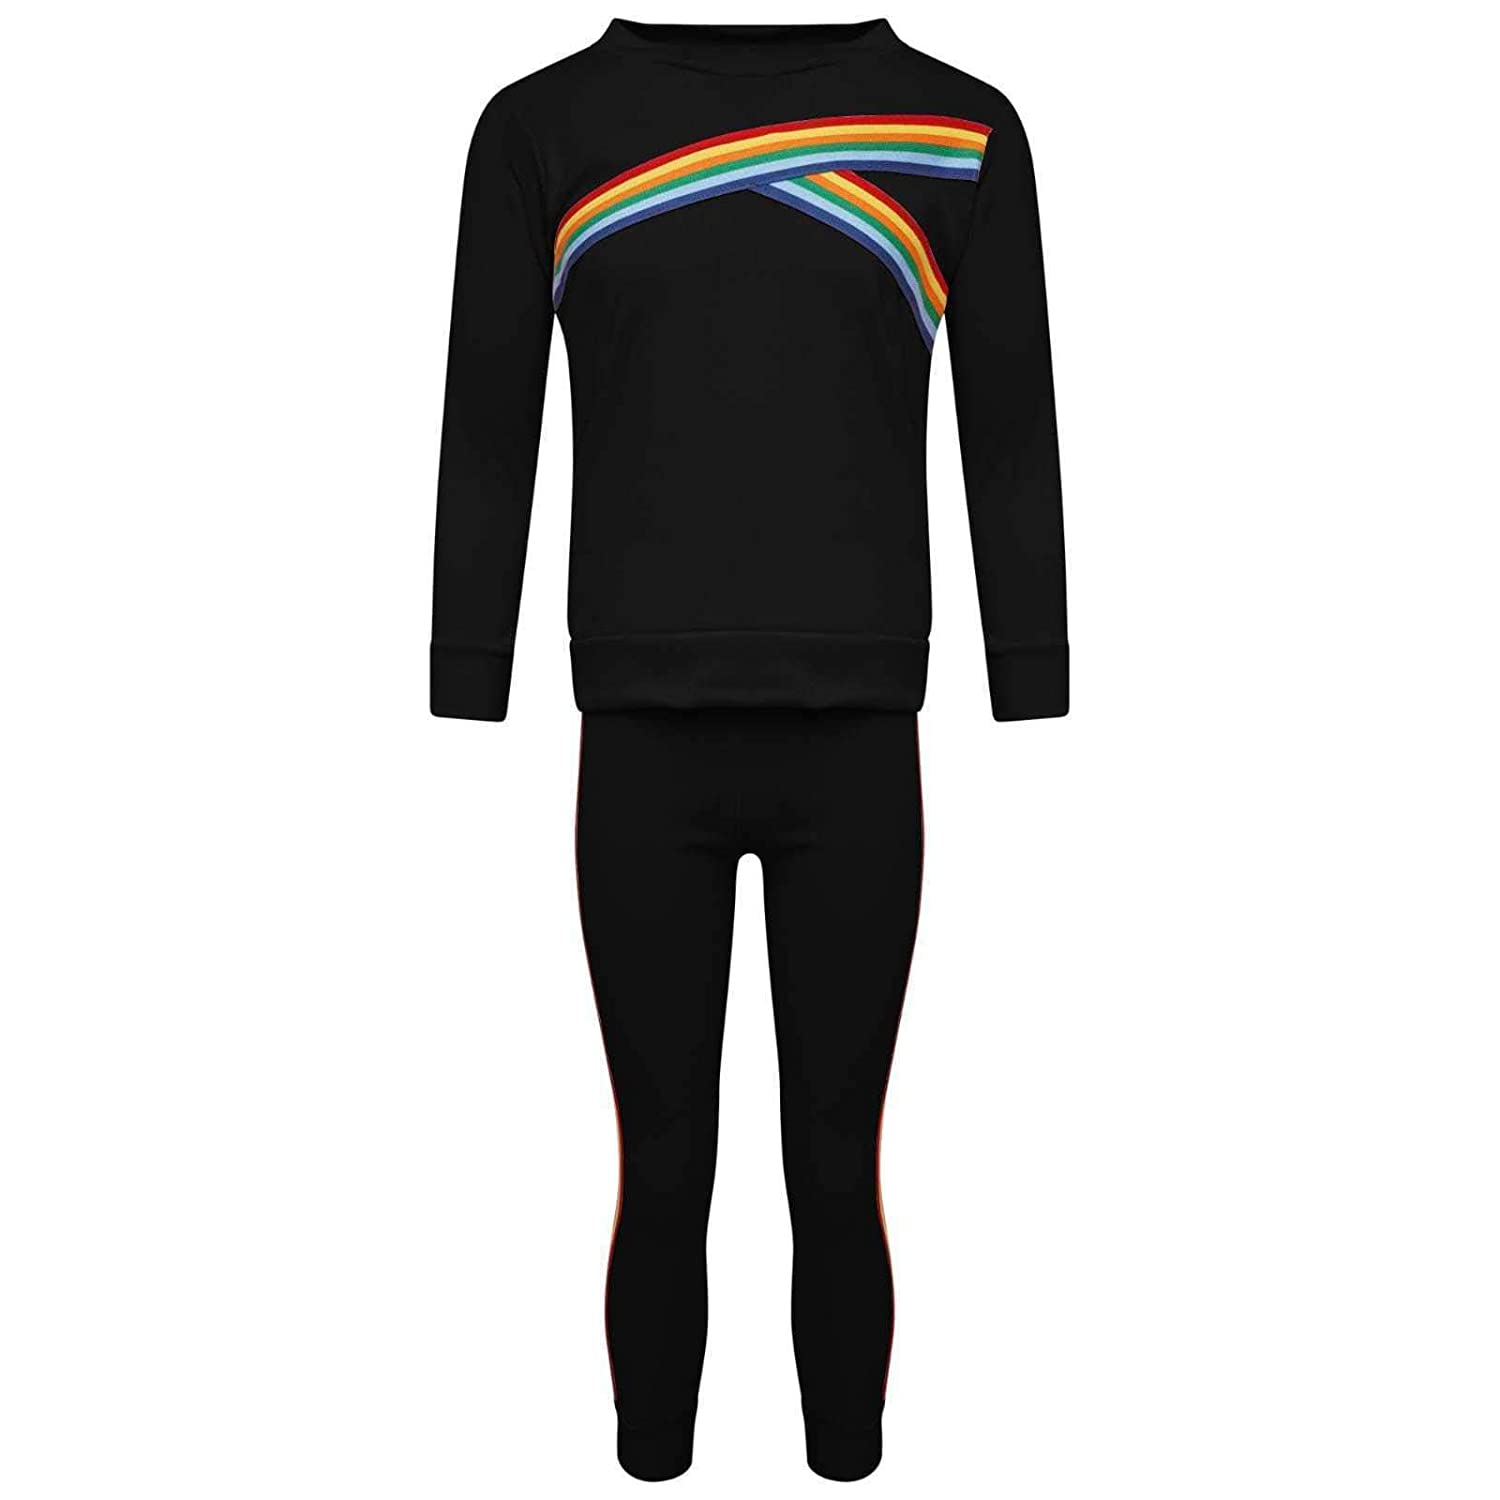 fashioncrazexx Boys Girls Black Rainbow Striped Tracksuit Children Loungewear Co Ord Lounge Set